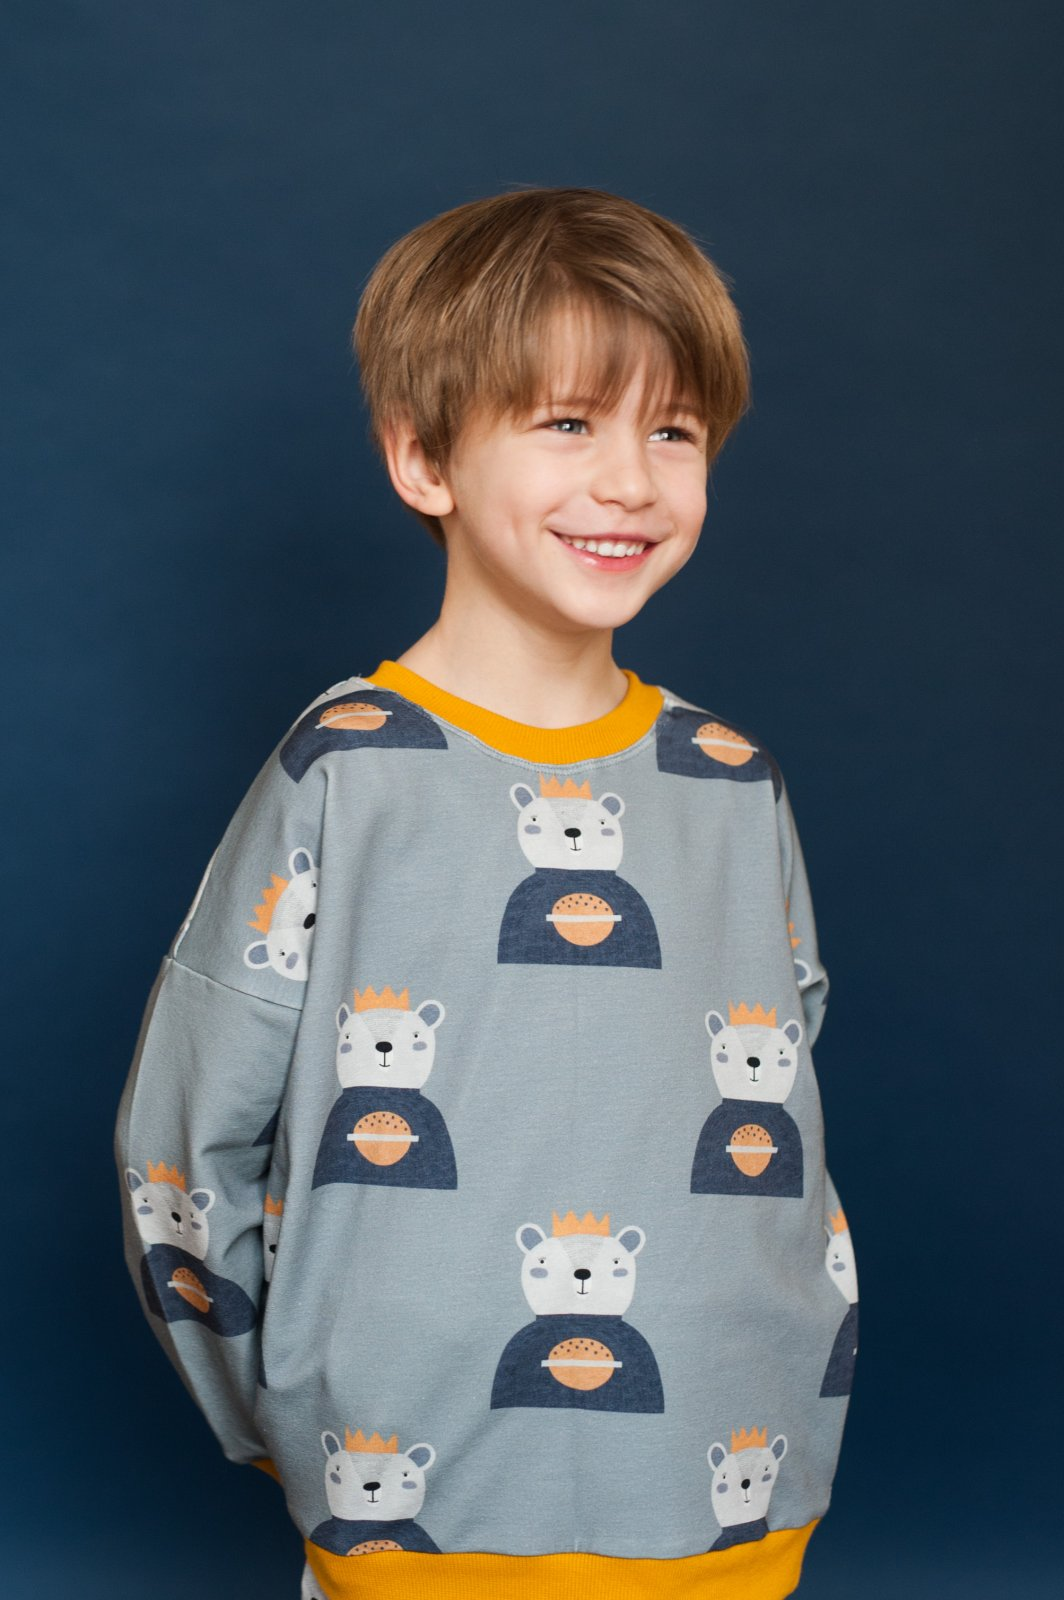 King of the Galaxy Sweatshirt by Don't Grow Up